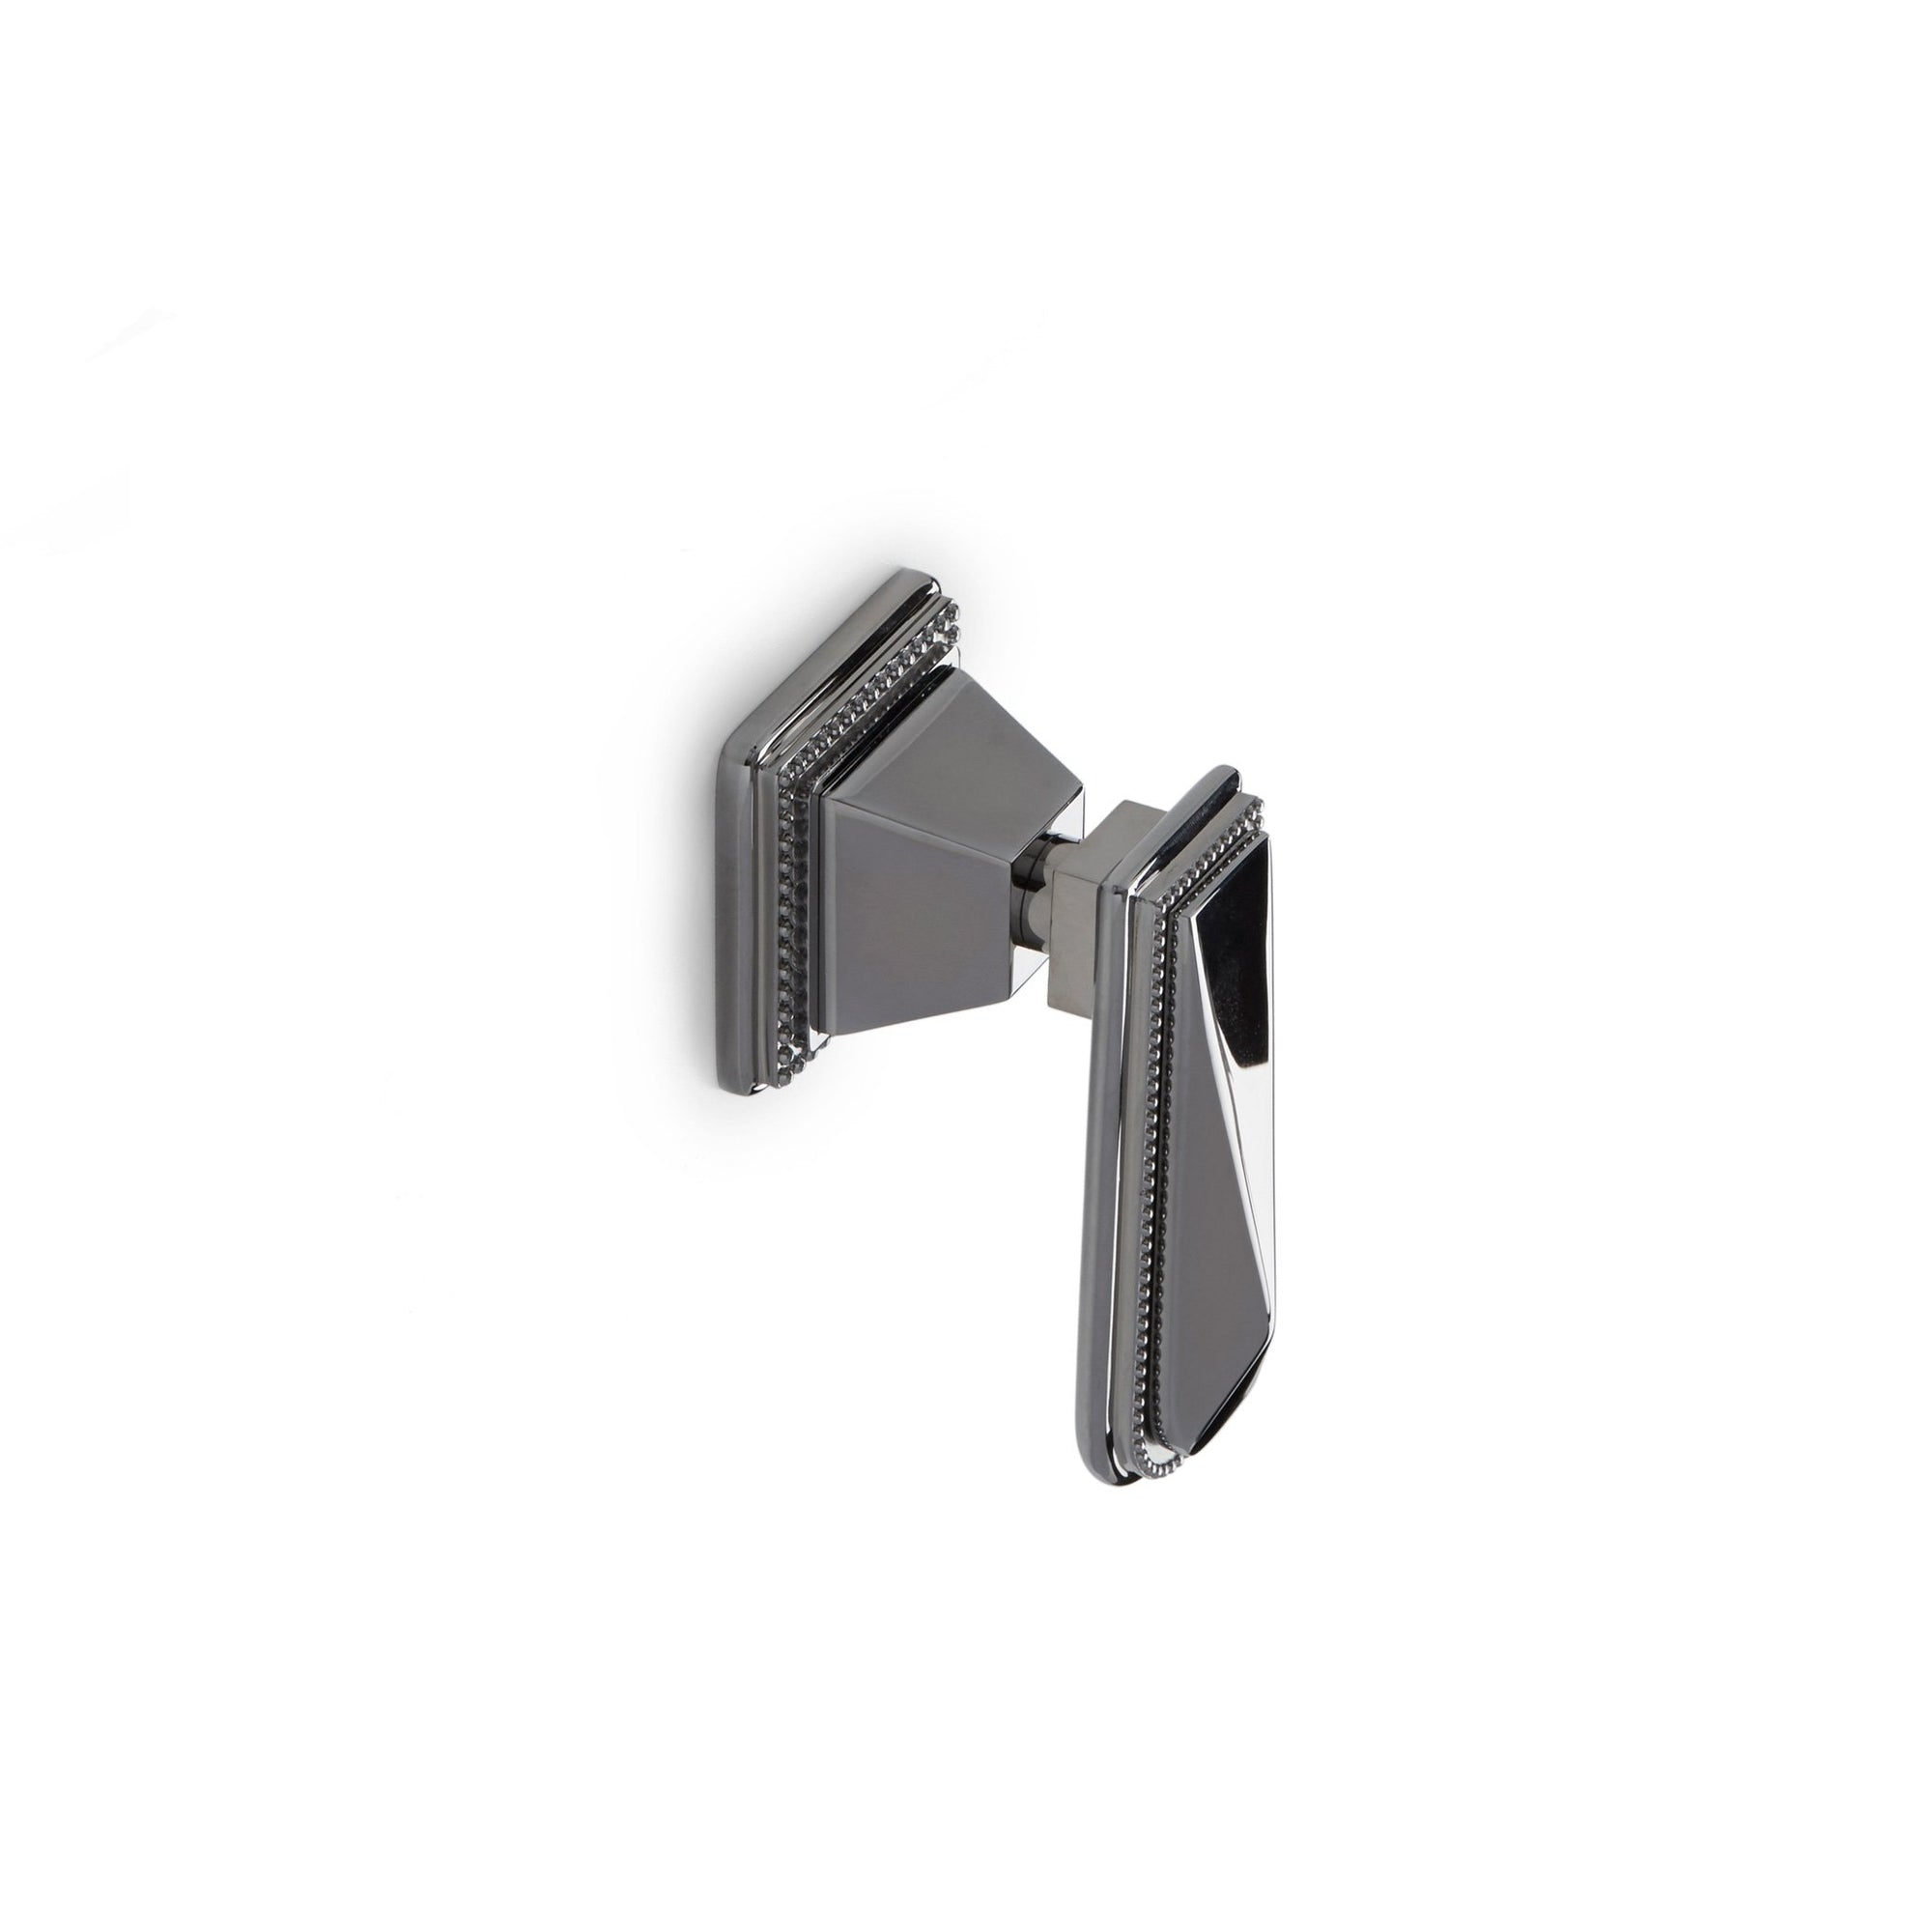 2050LV-ESC-CP Sherle Wagner International Pyramid Lever Volume Control and Diverter Trim in Polished Chrome metal finish